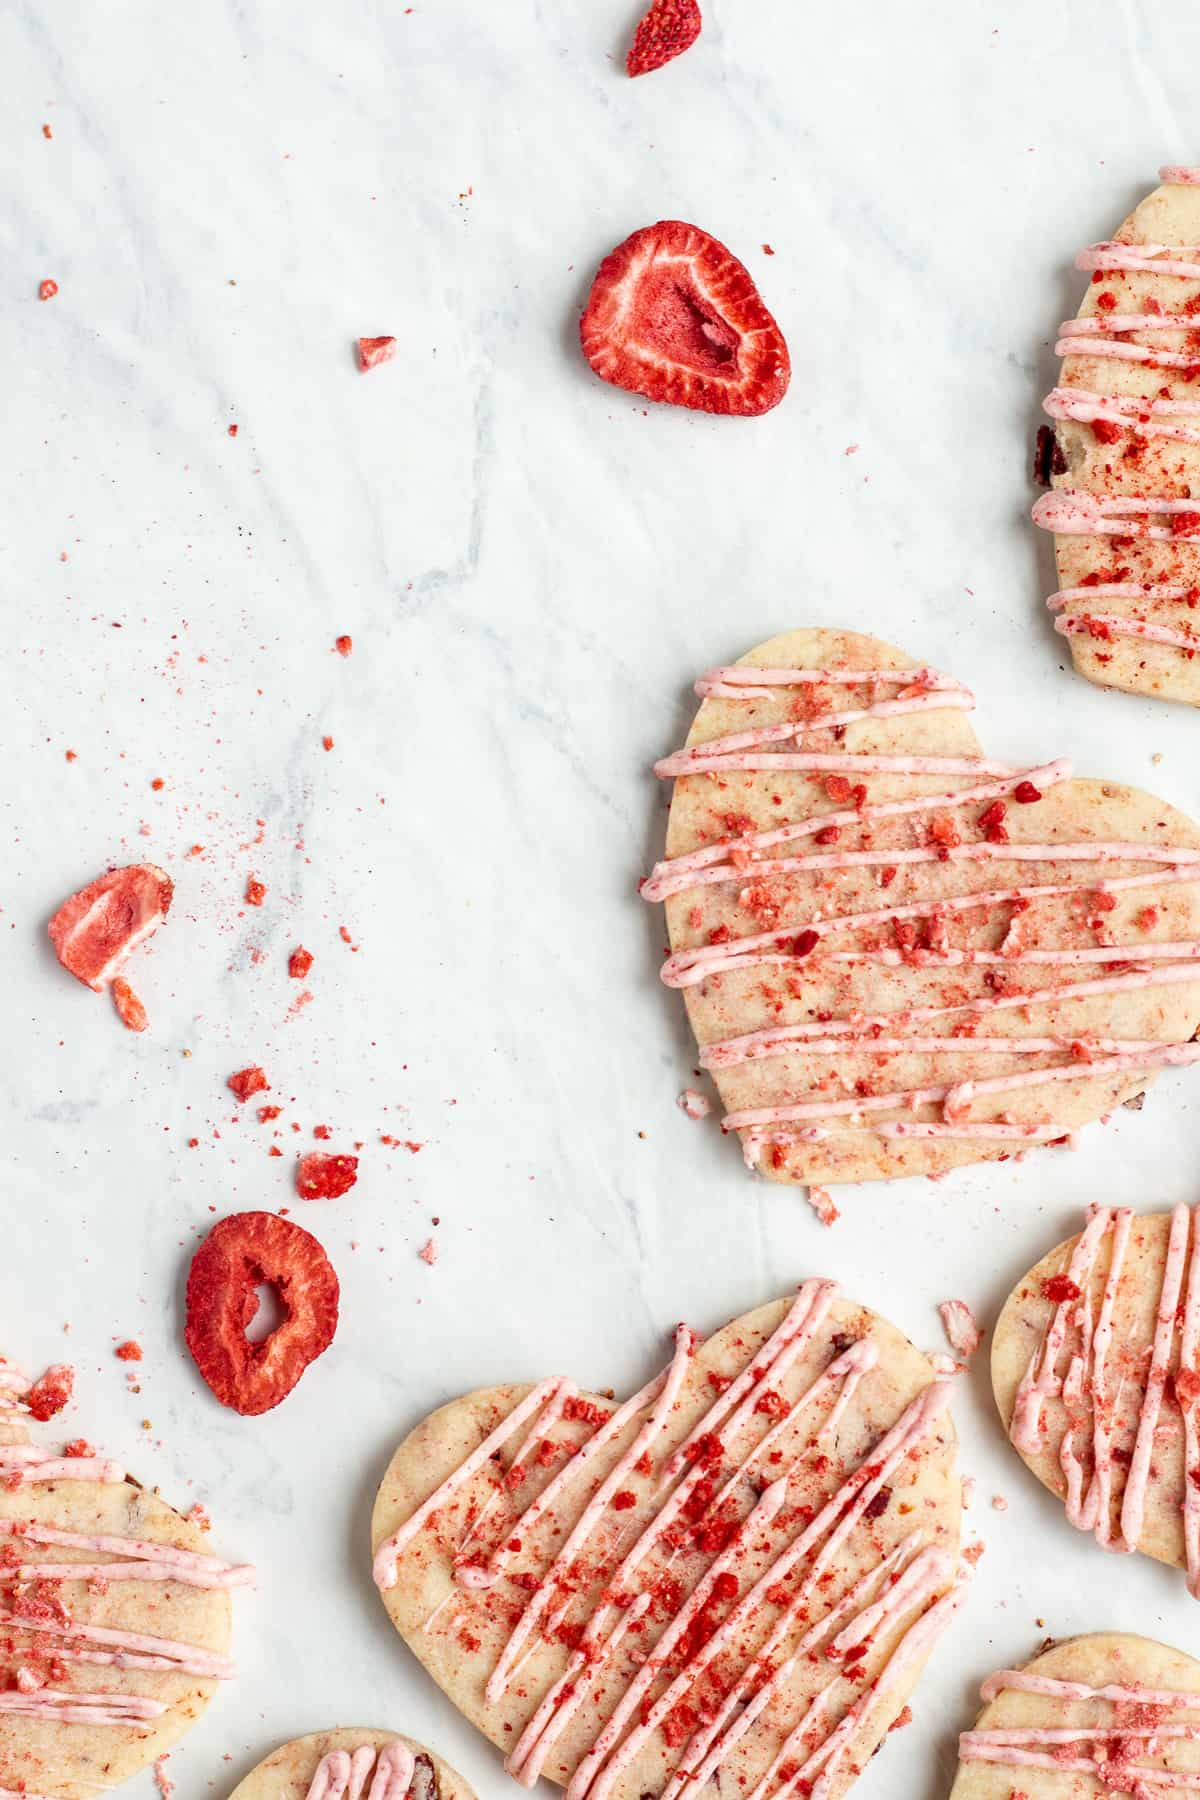 Strawberries and Cream Shortbread Cookies